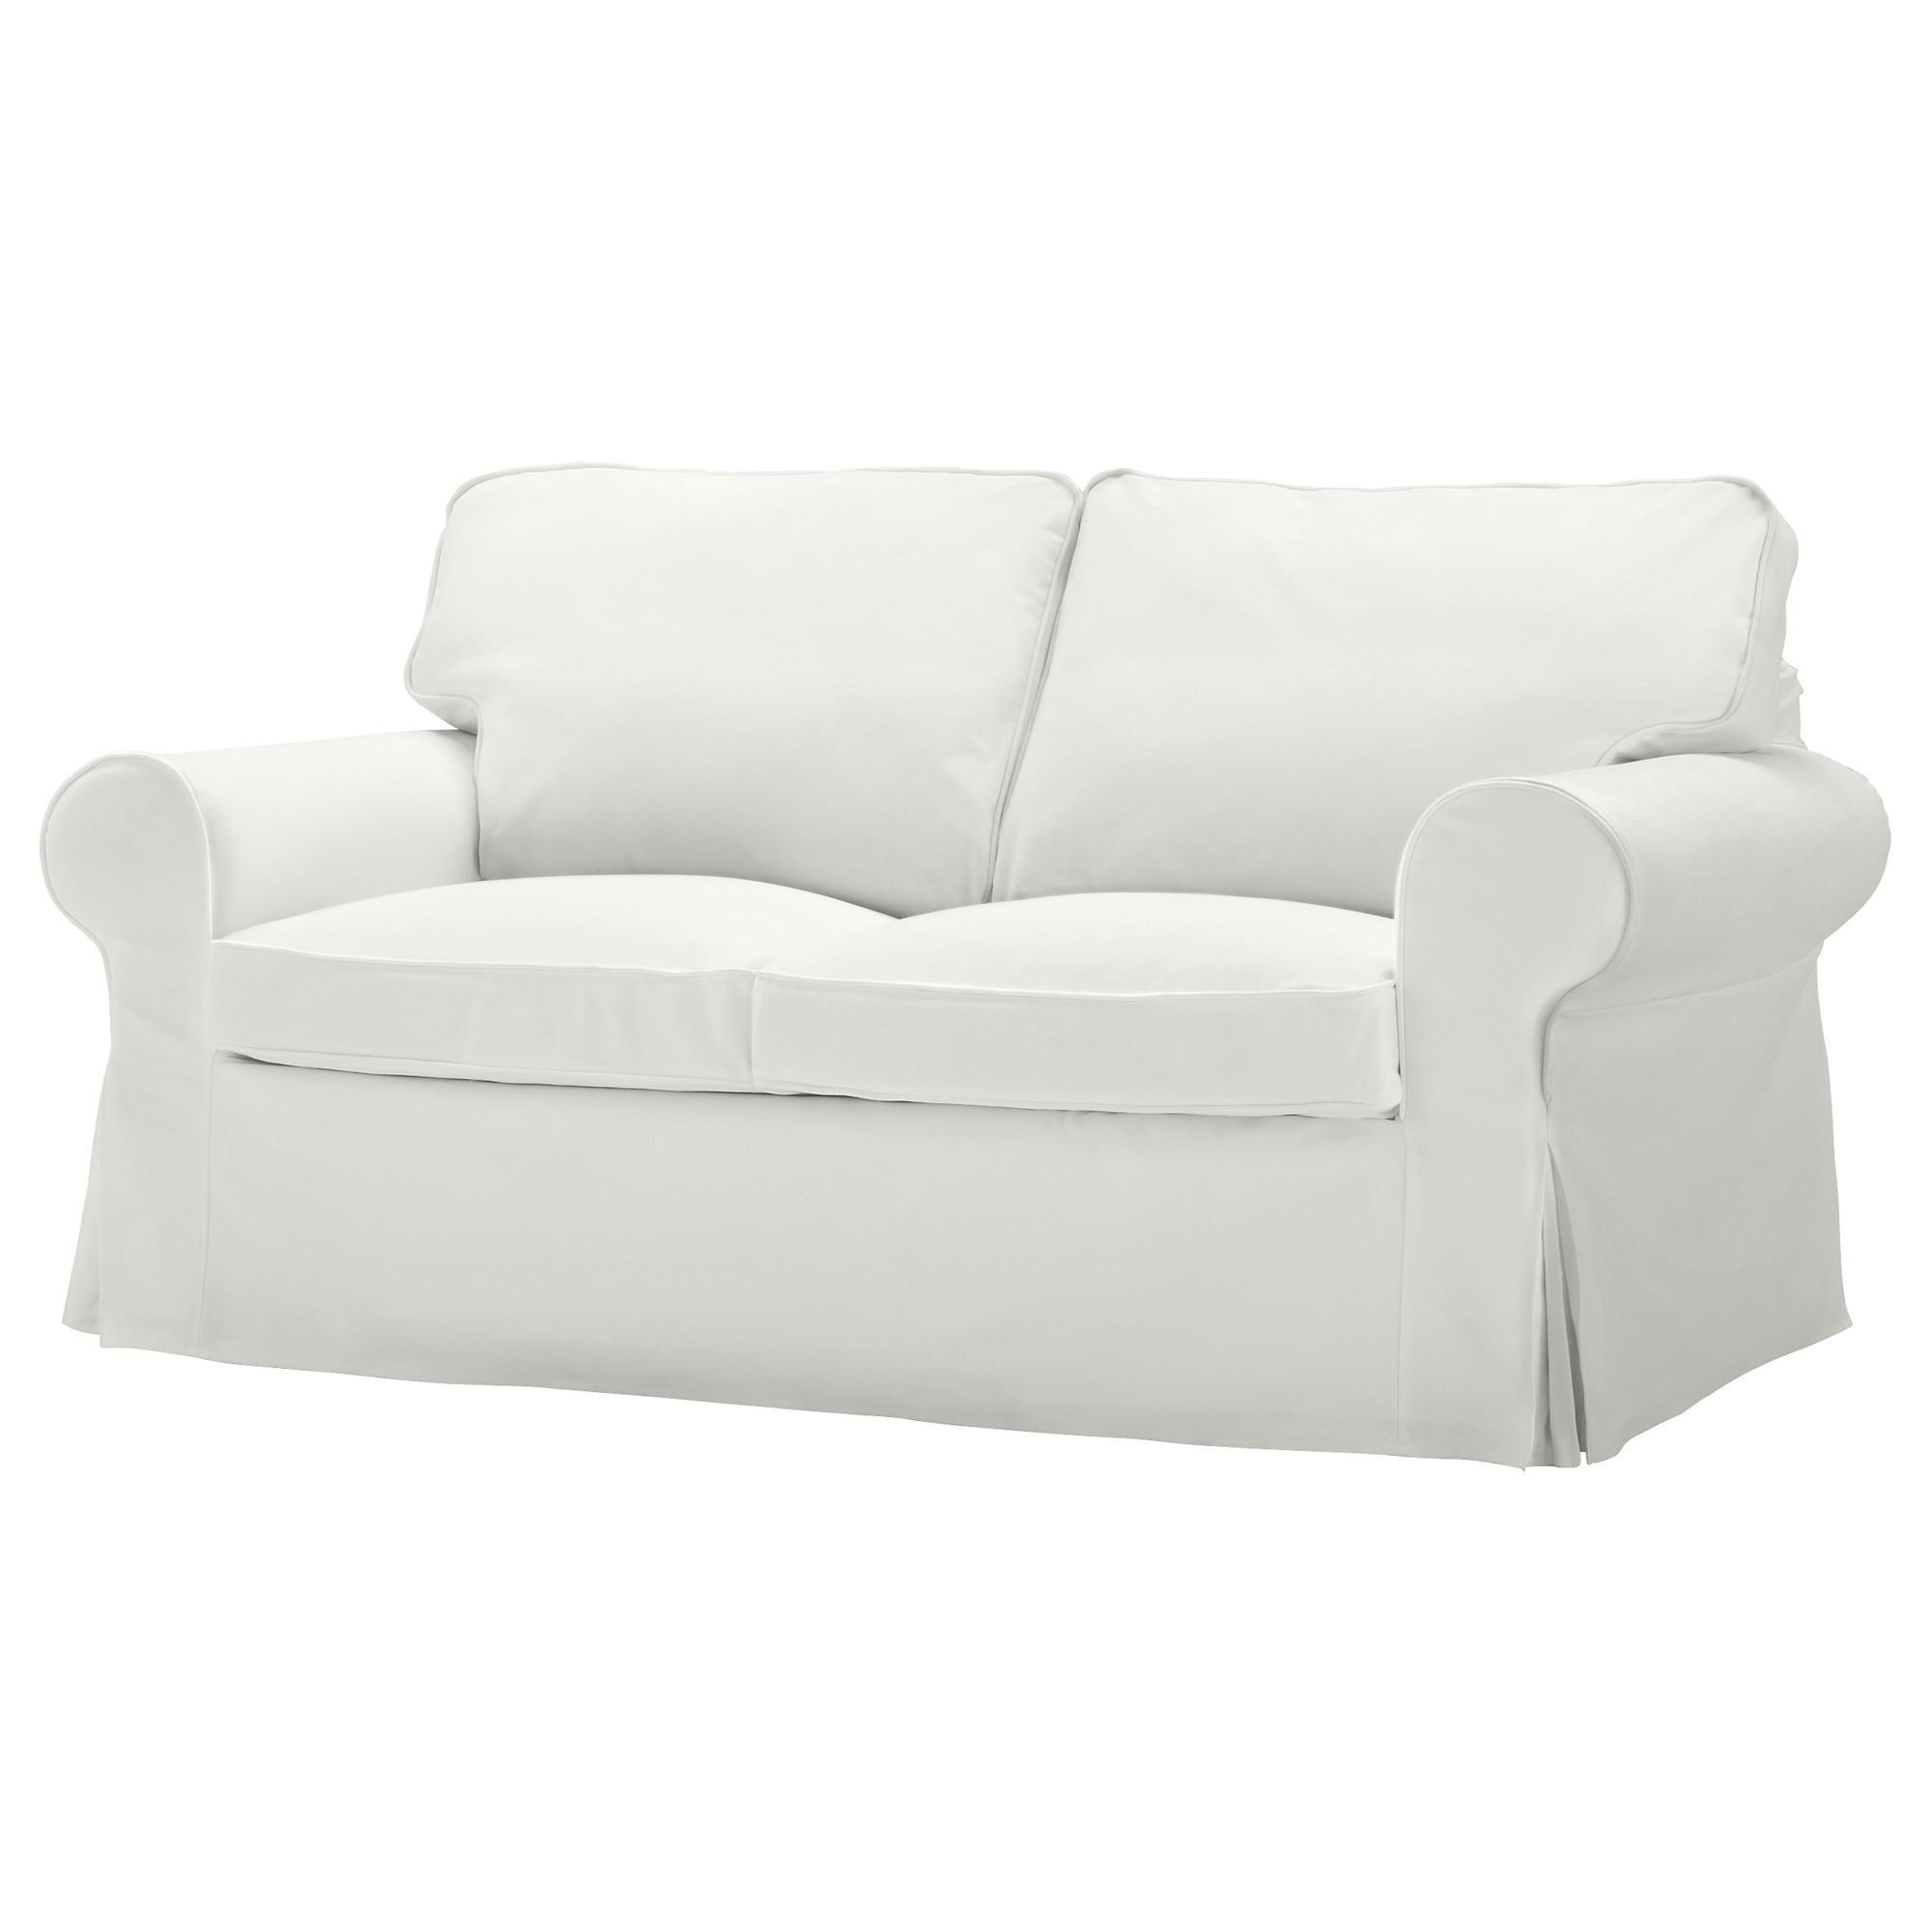 Furniture: Give Your Sofa Fresh New Look With Ikea Ektorp Chair Intended For Ikea Sofa Chairs (Image 7 of 25)